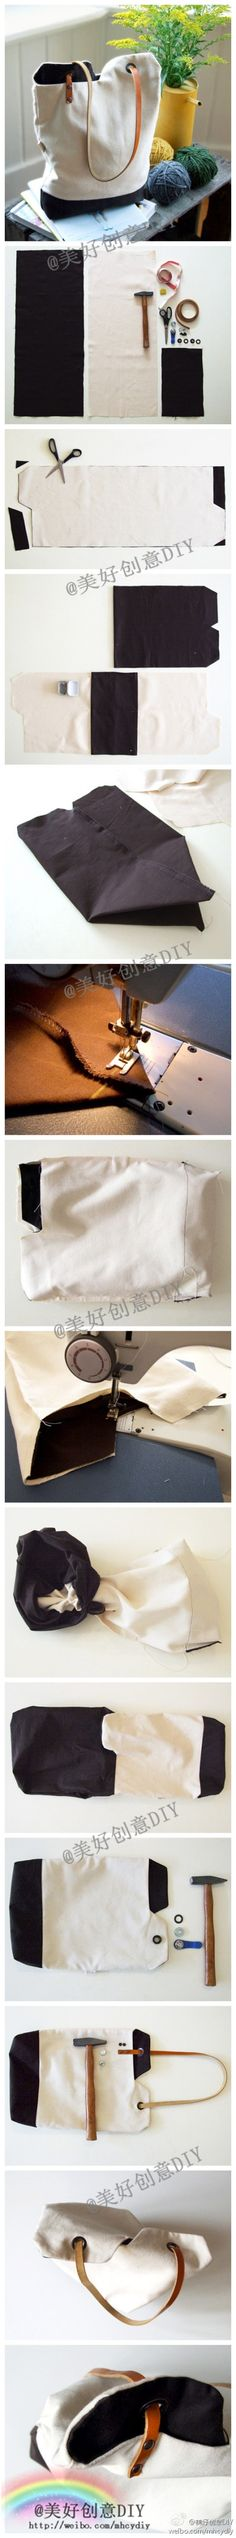 i think a can sew this bag.. looks quite easy :-)